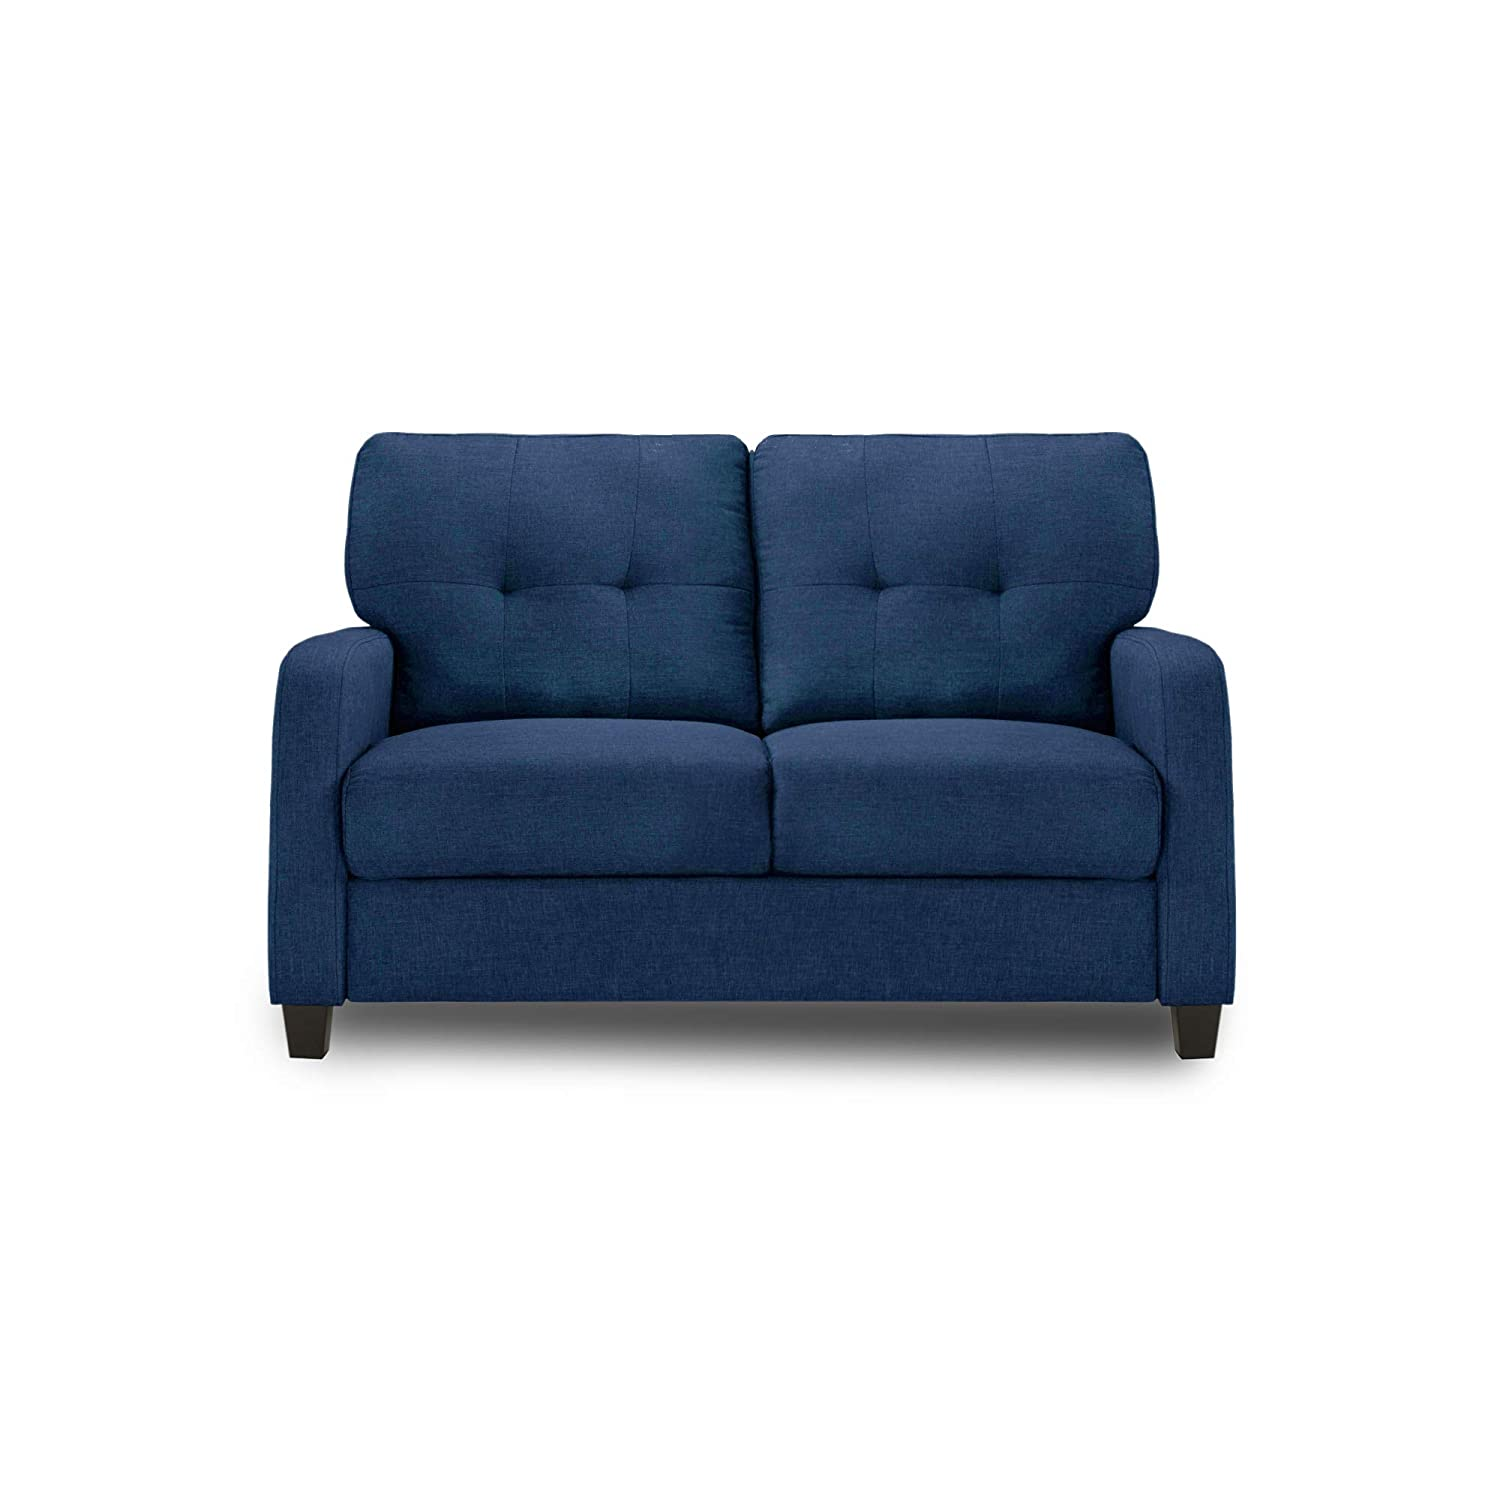 Adorn India Astor Two Seater Sofa (Blue)